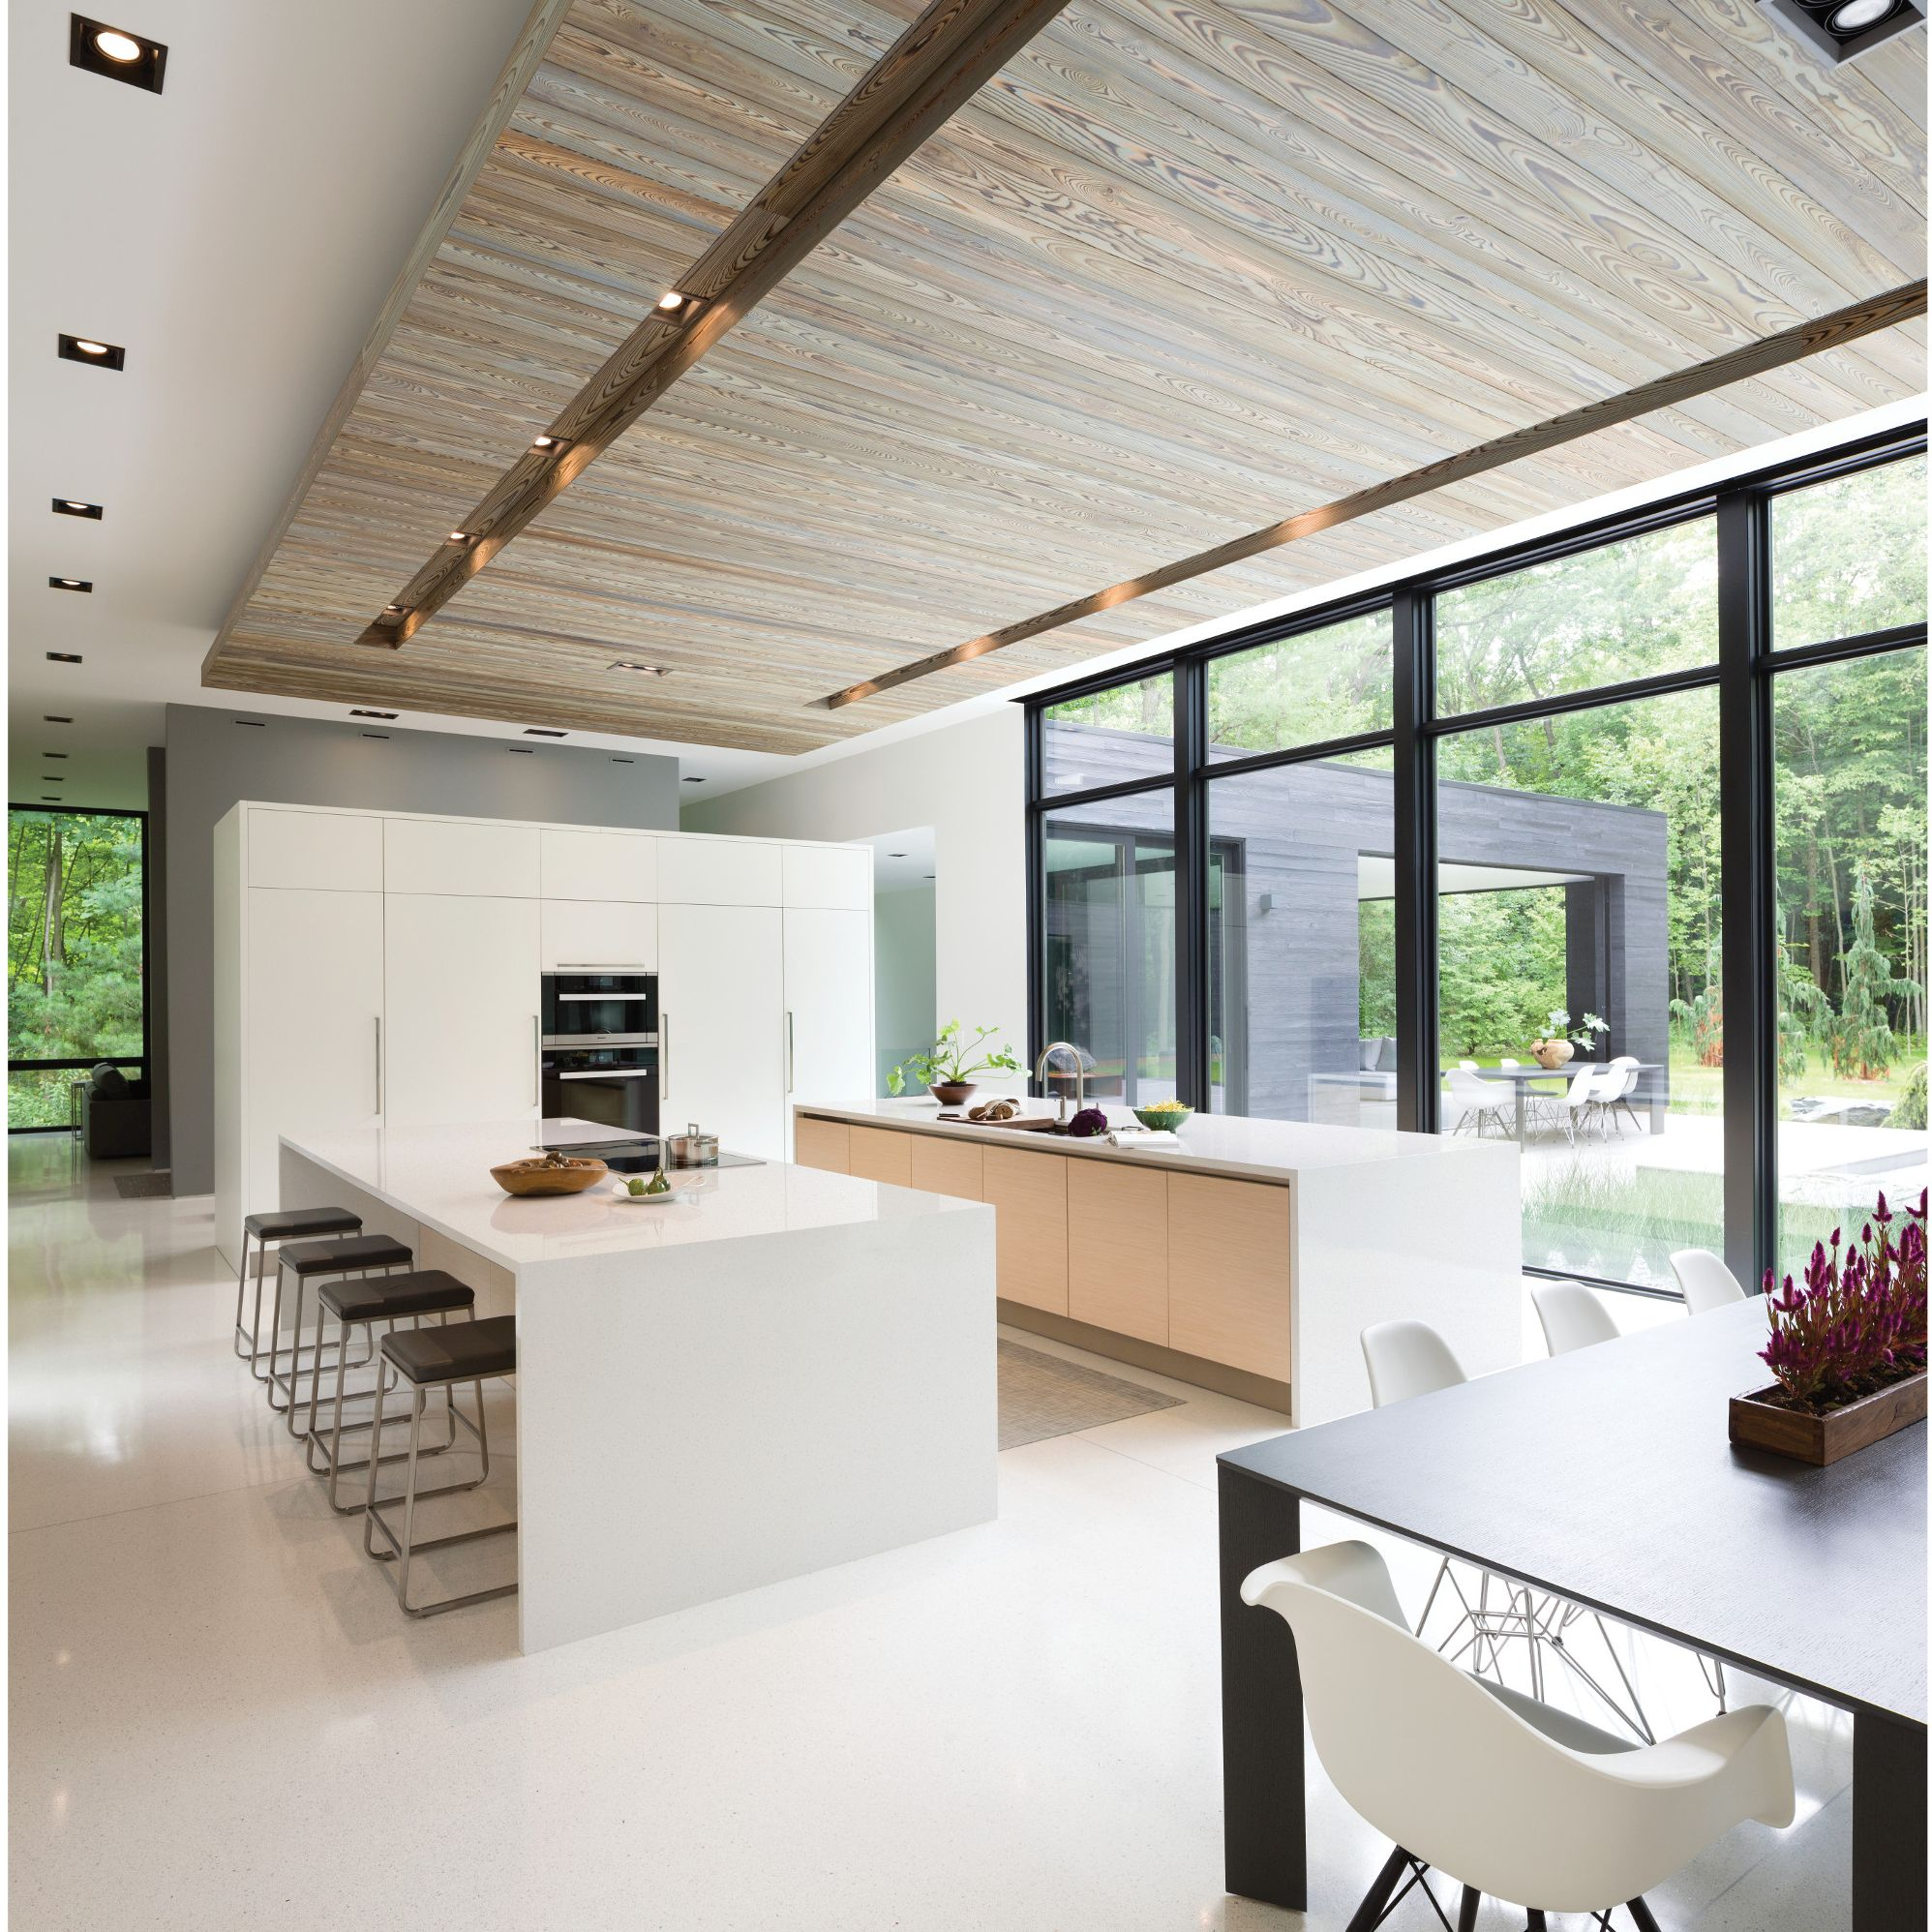 A picture containing indoor, living, ceiling, wall  Description automatically generated